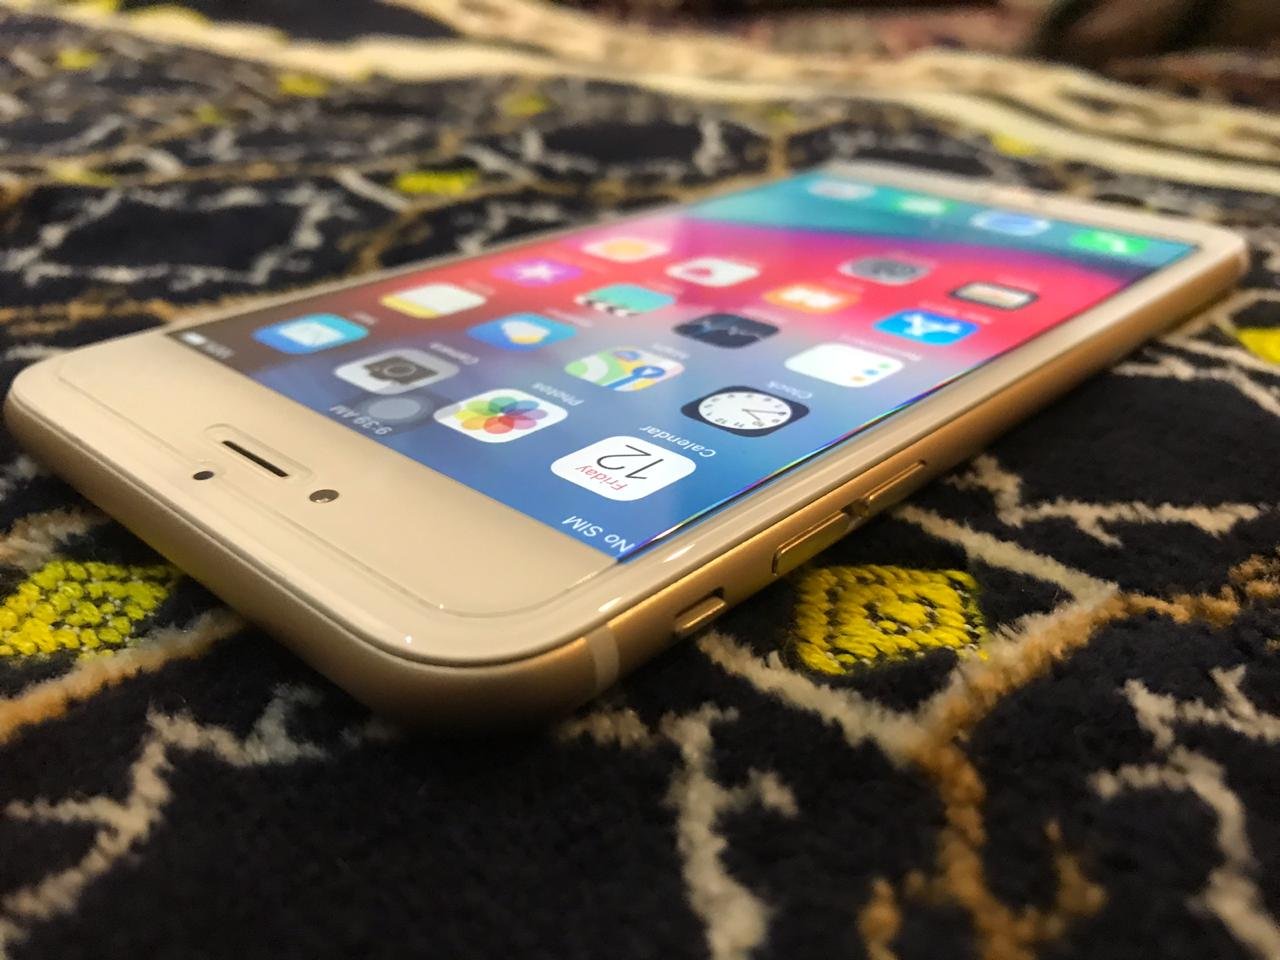 Apple iPhone 6 Plus 16gb Gold just Like Zero 10/10 IMEI Match Complete Accessories - photo 4